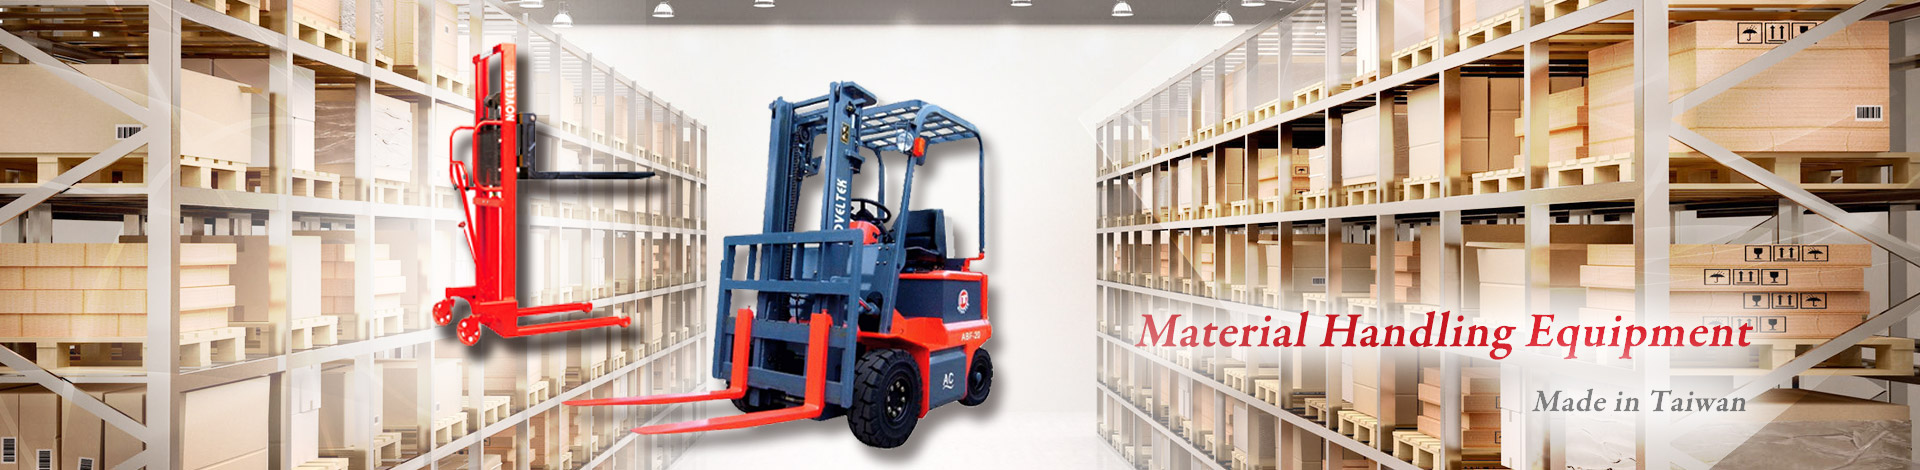 Noveltek Industrial Manufacturing Inc. is a leading manufacturer specialized in Counter Balanced Reach Truck, Pallet Stacker, Pallet Truck.